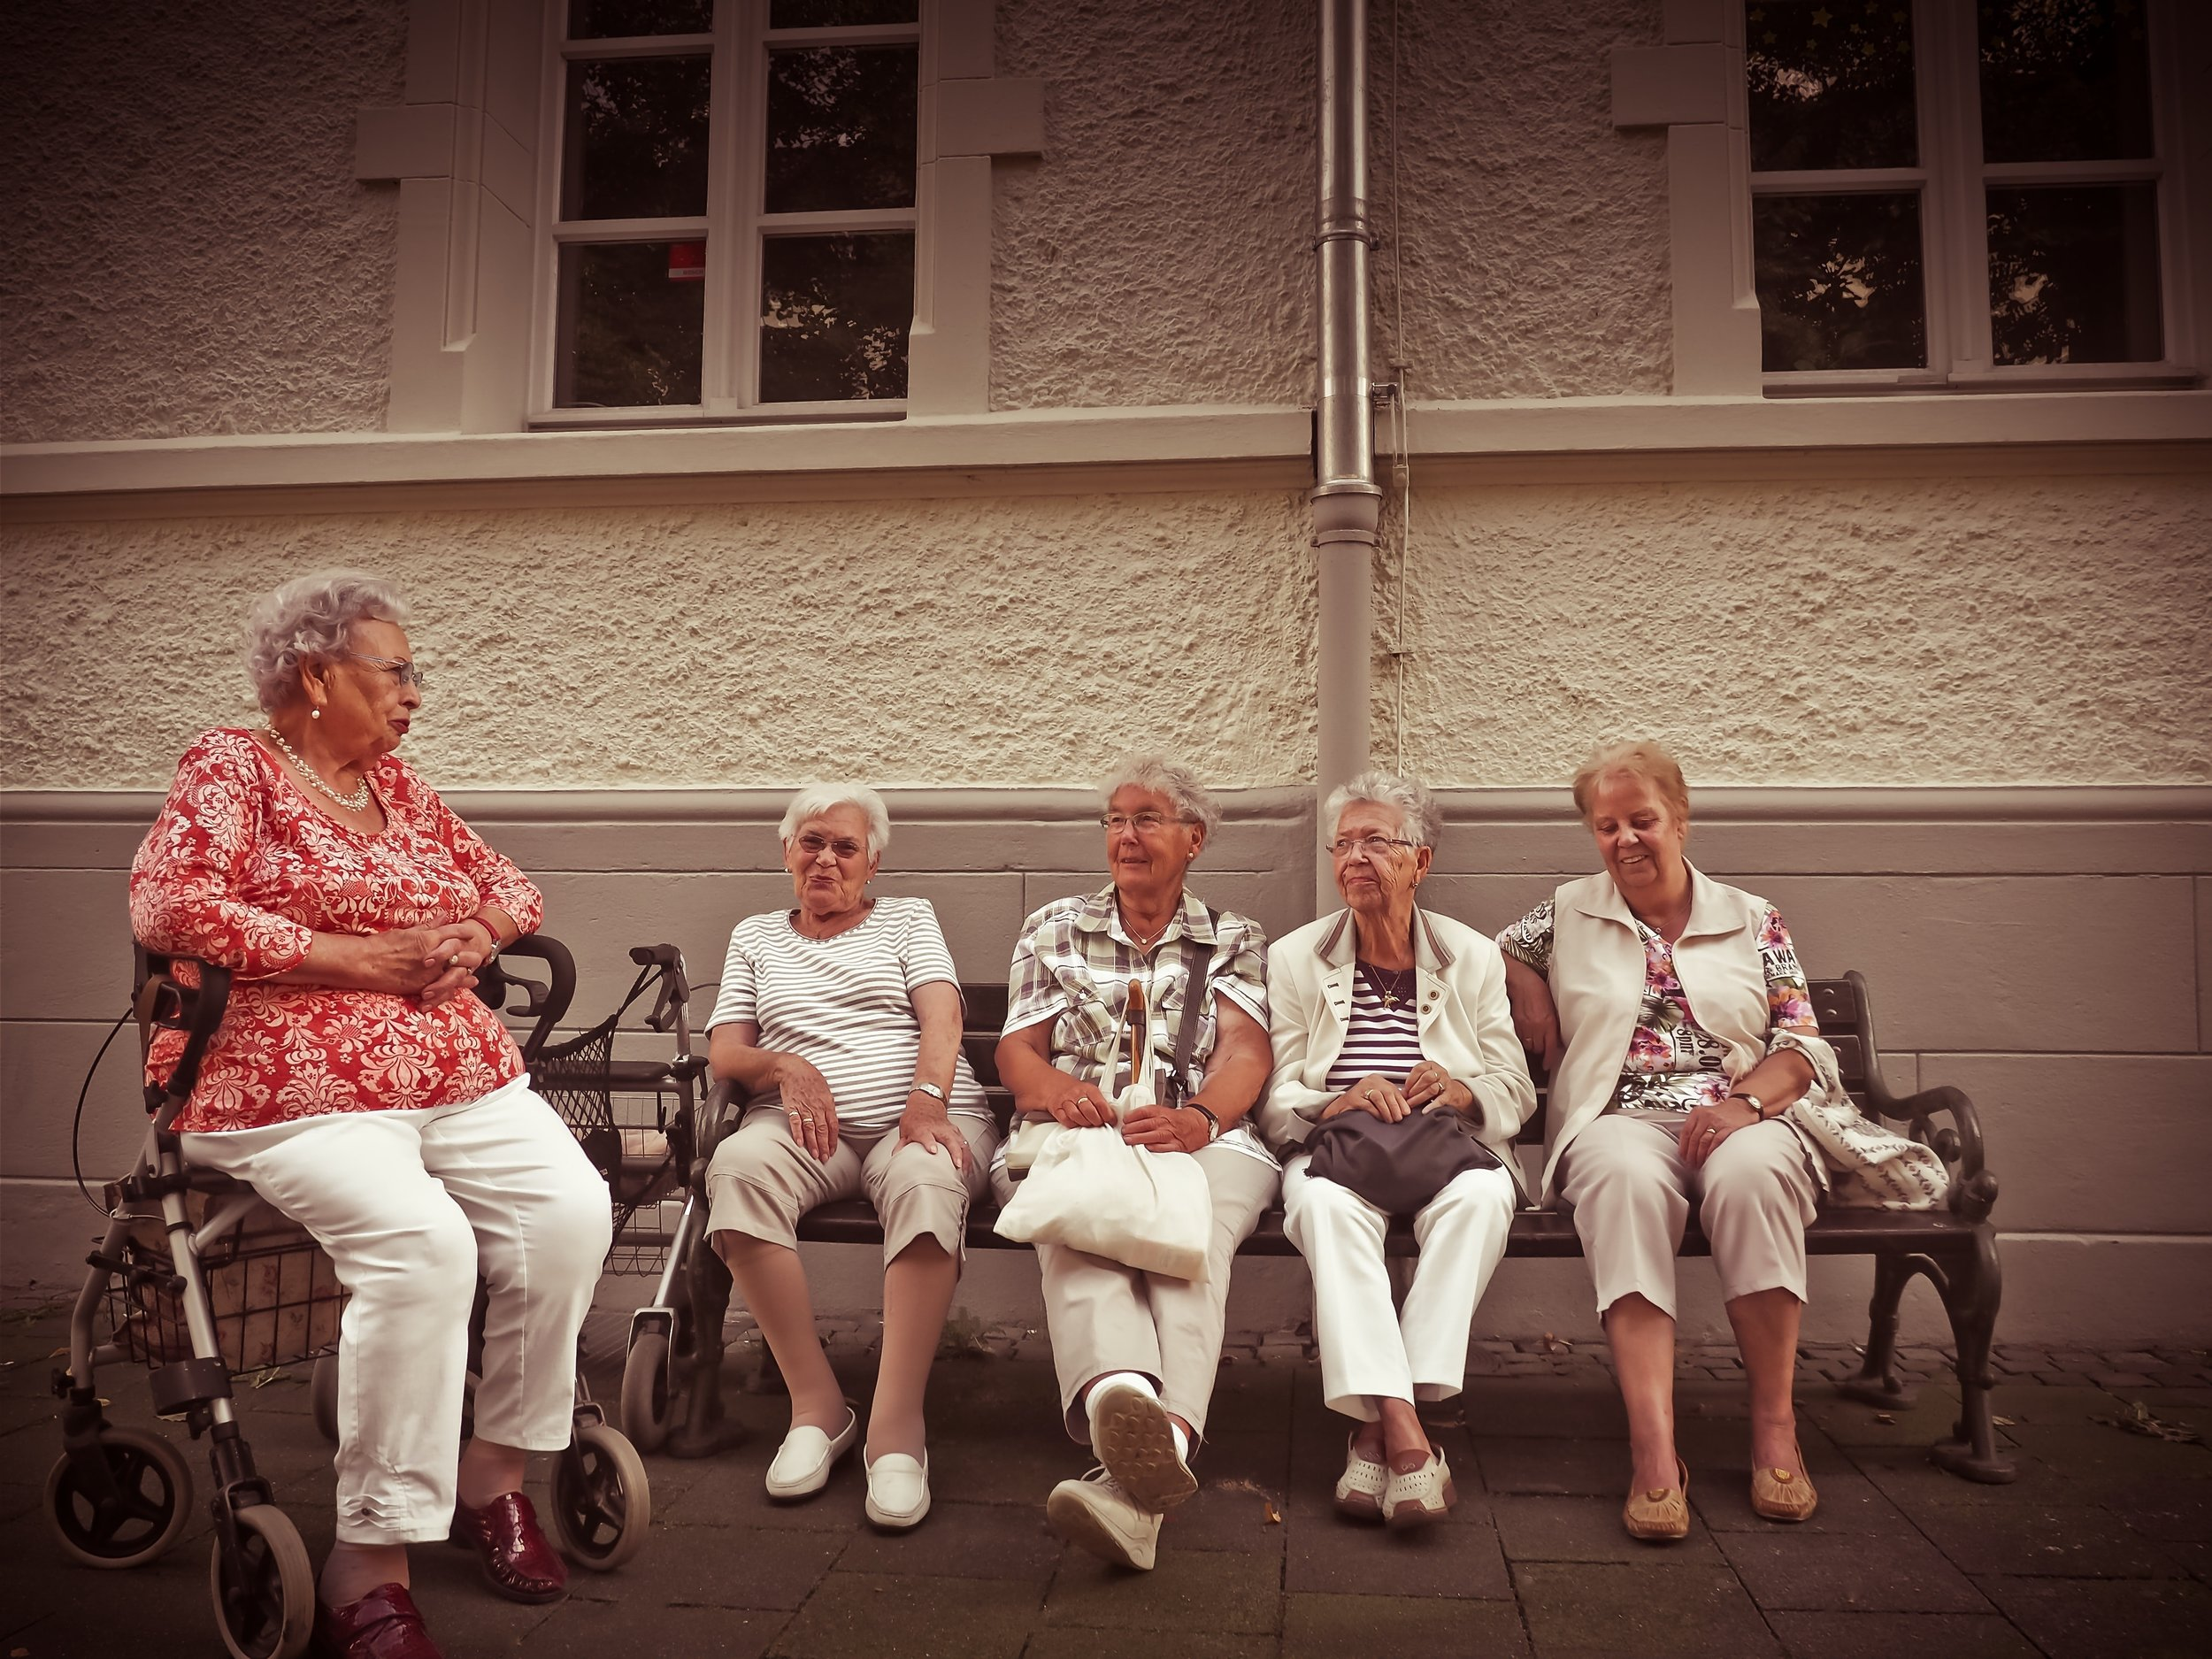 A group of older adults sitting together